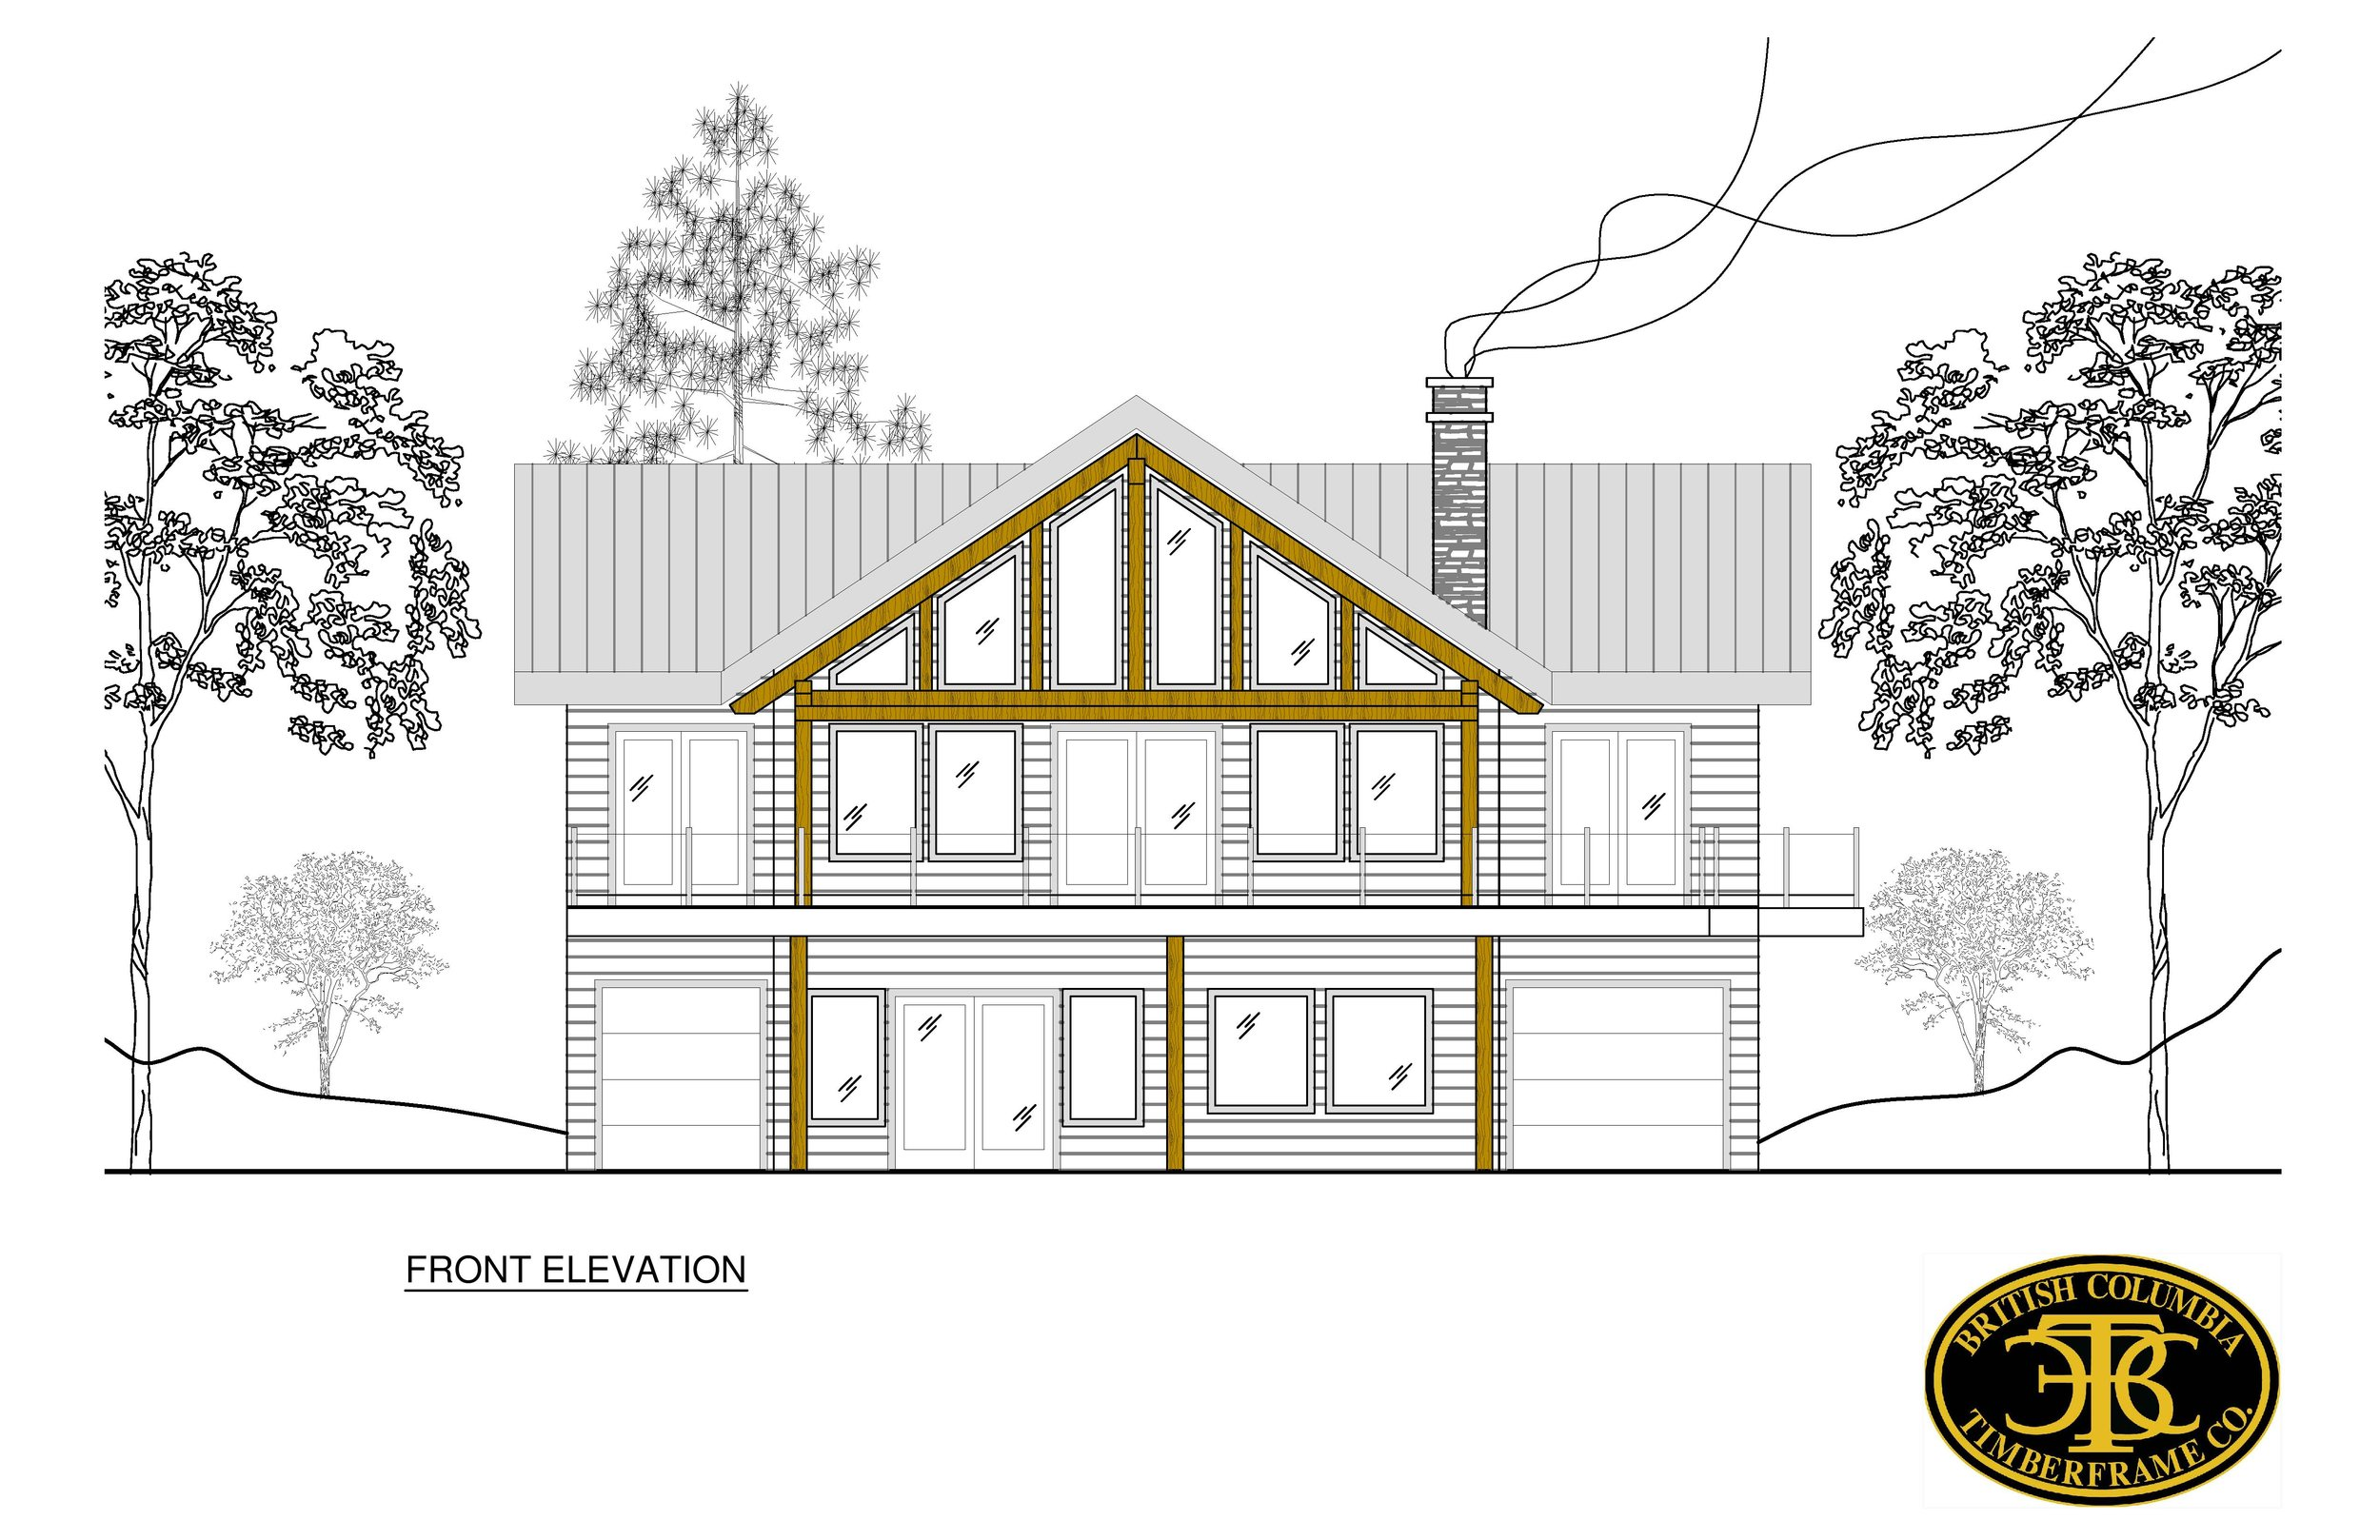 Greenlake_Front Elevation-page-001.jpg